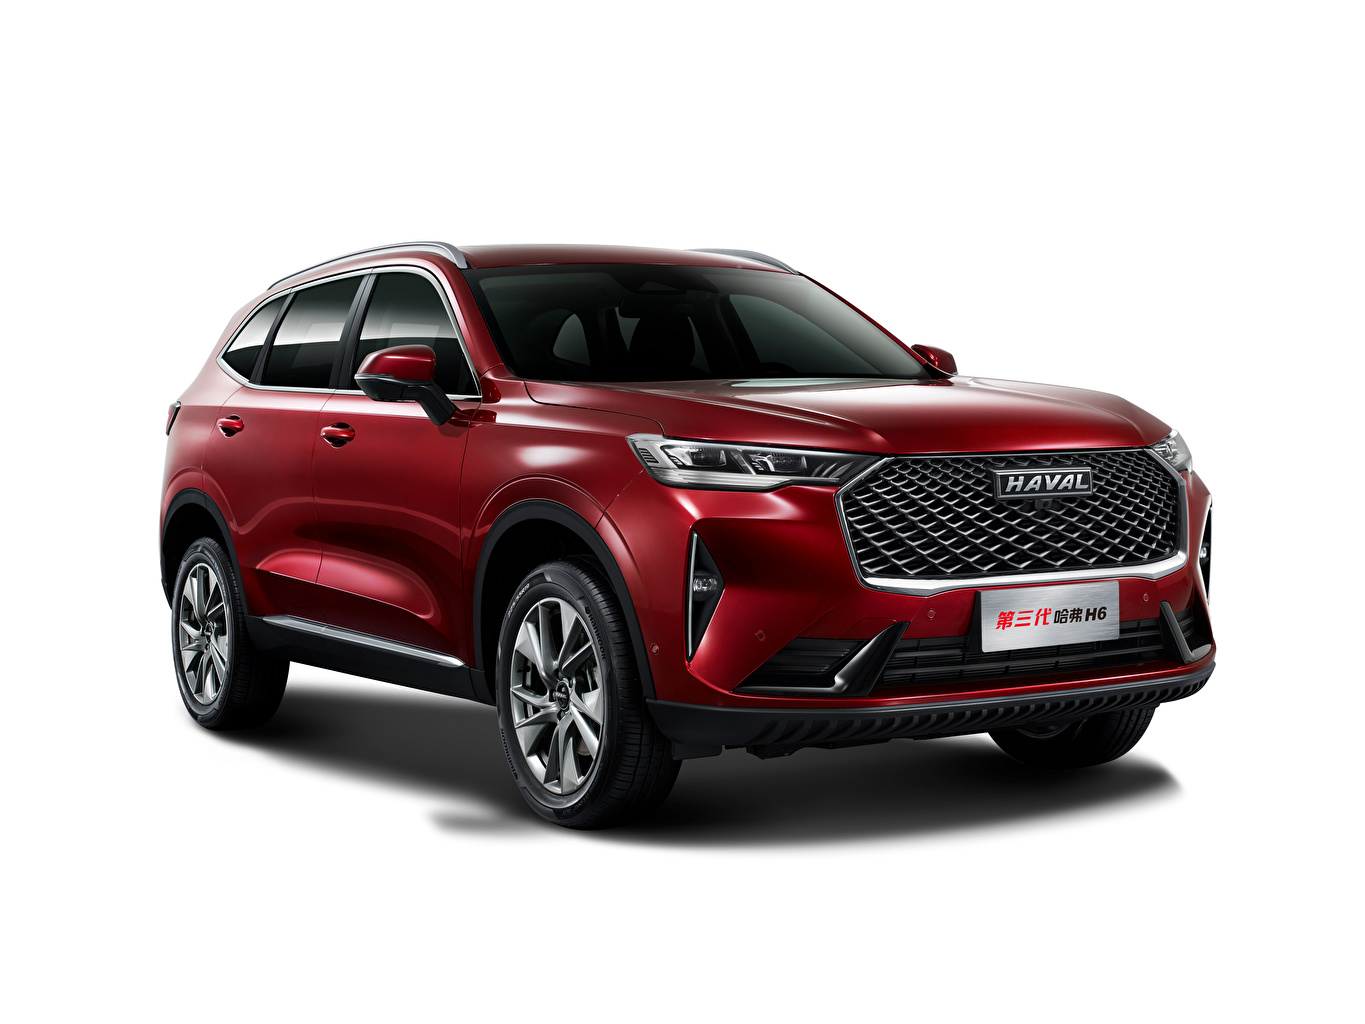 Images Haval Chinese CUV H6, 2020 Red Metallic automobile White background Crossover auto Cars